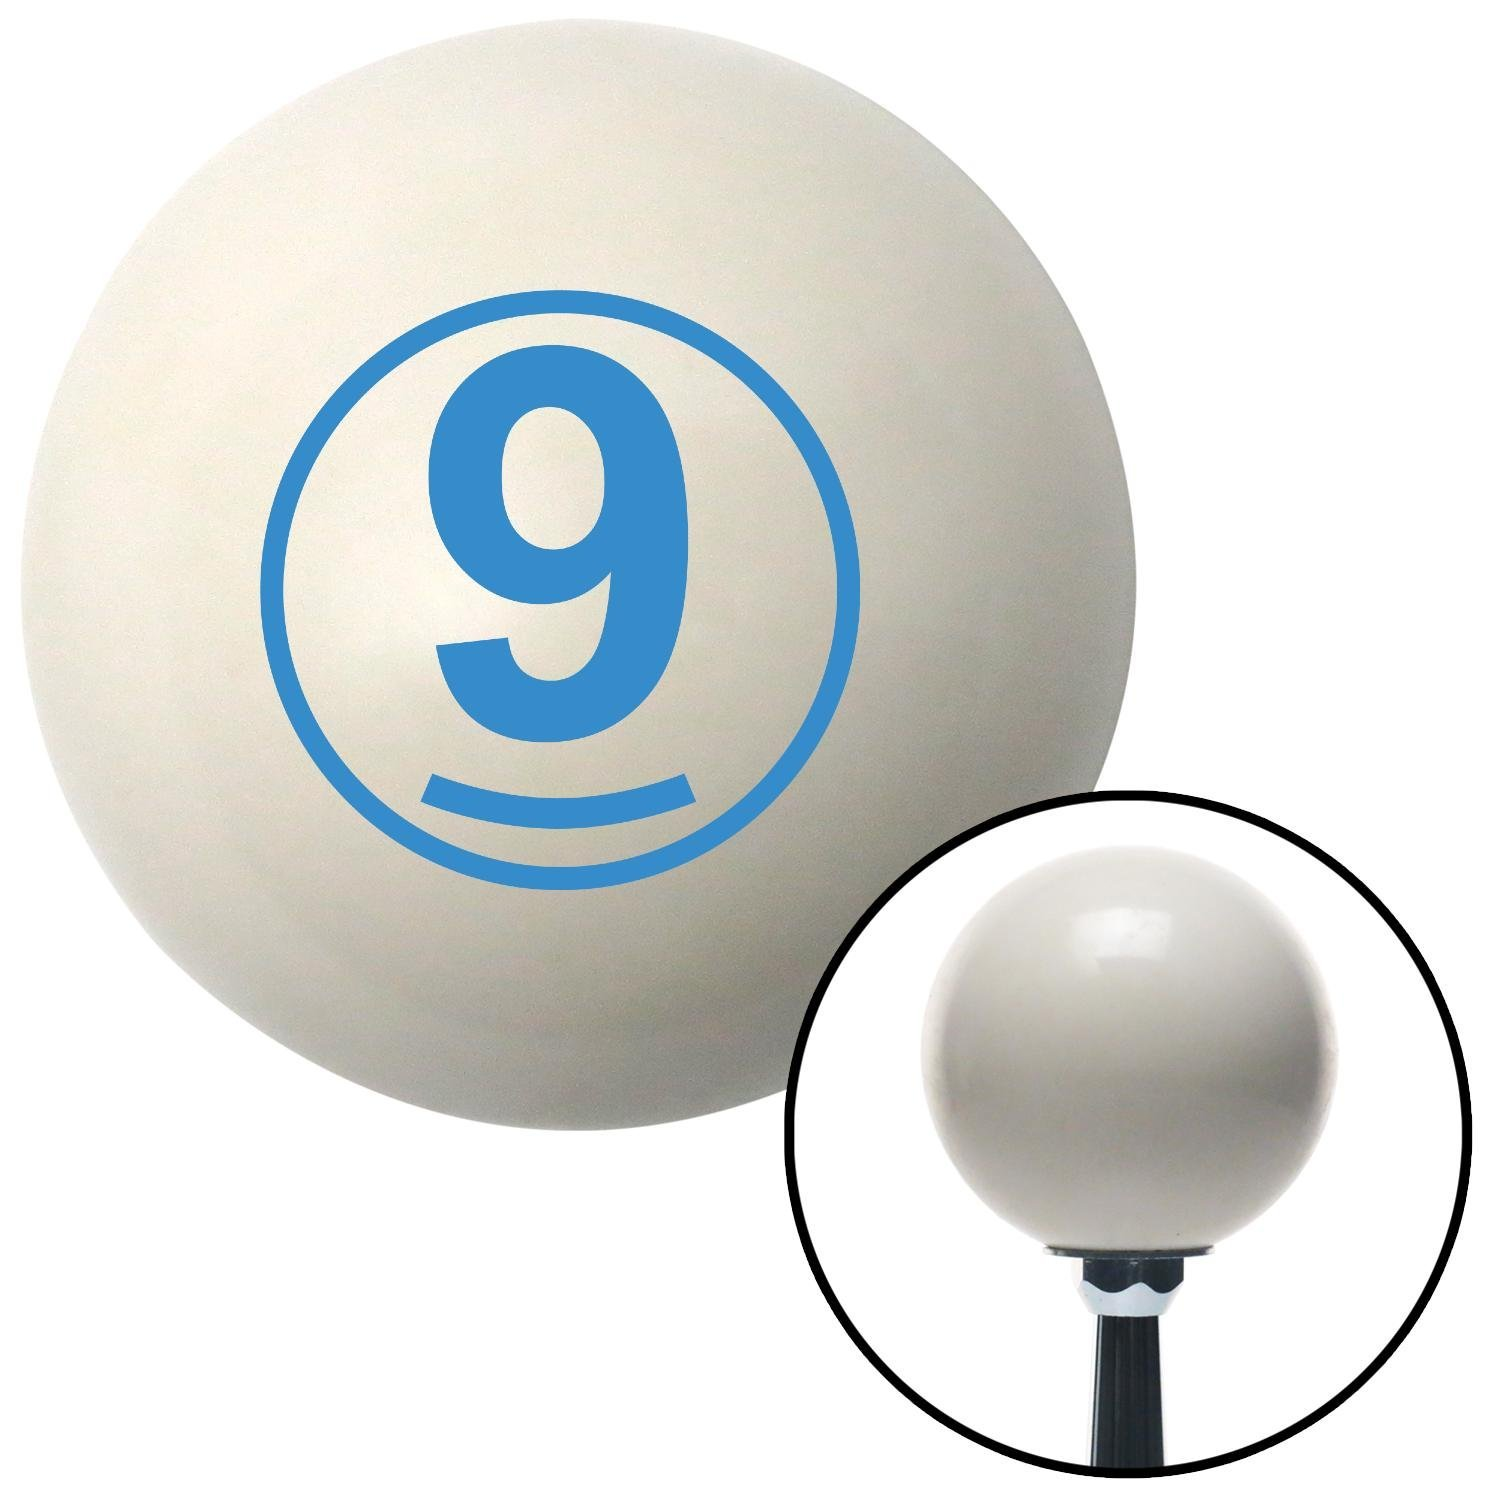 American Shifter 30337 Ivory Shift Knob with 16mm x 1.5 Insert Blue Ball 9